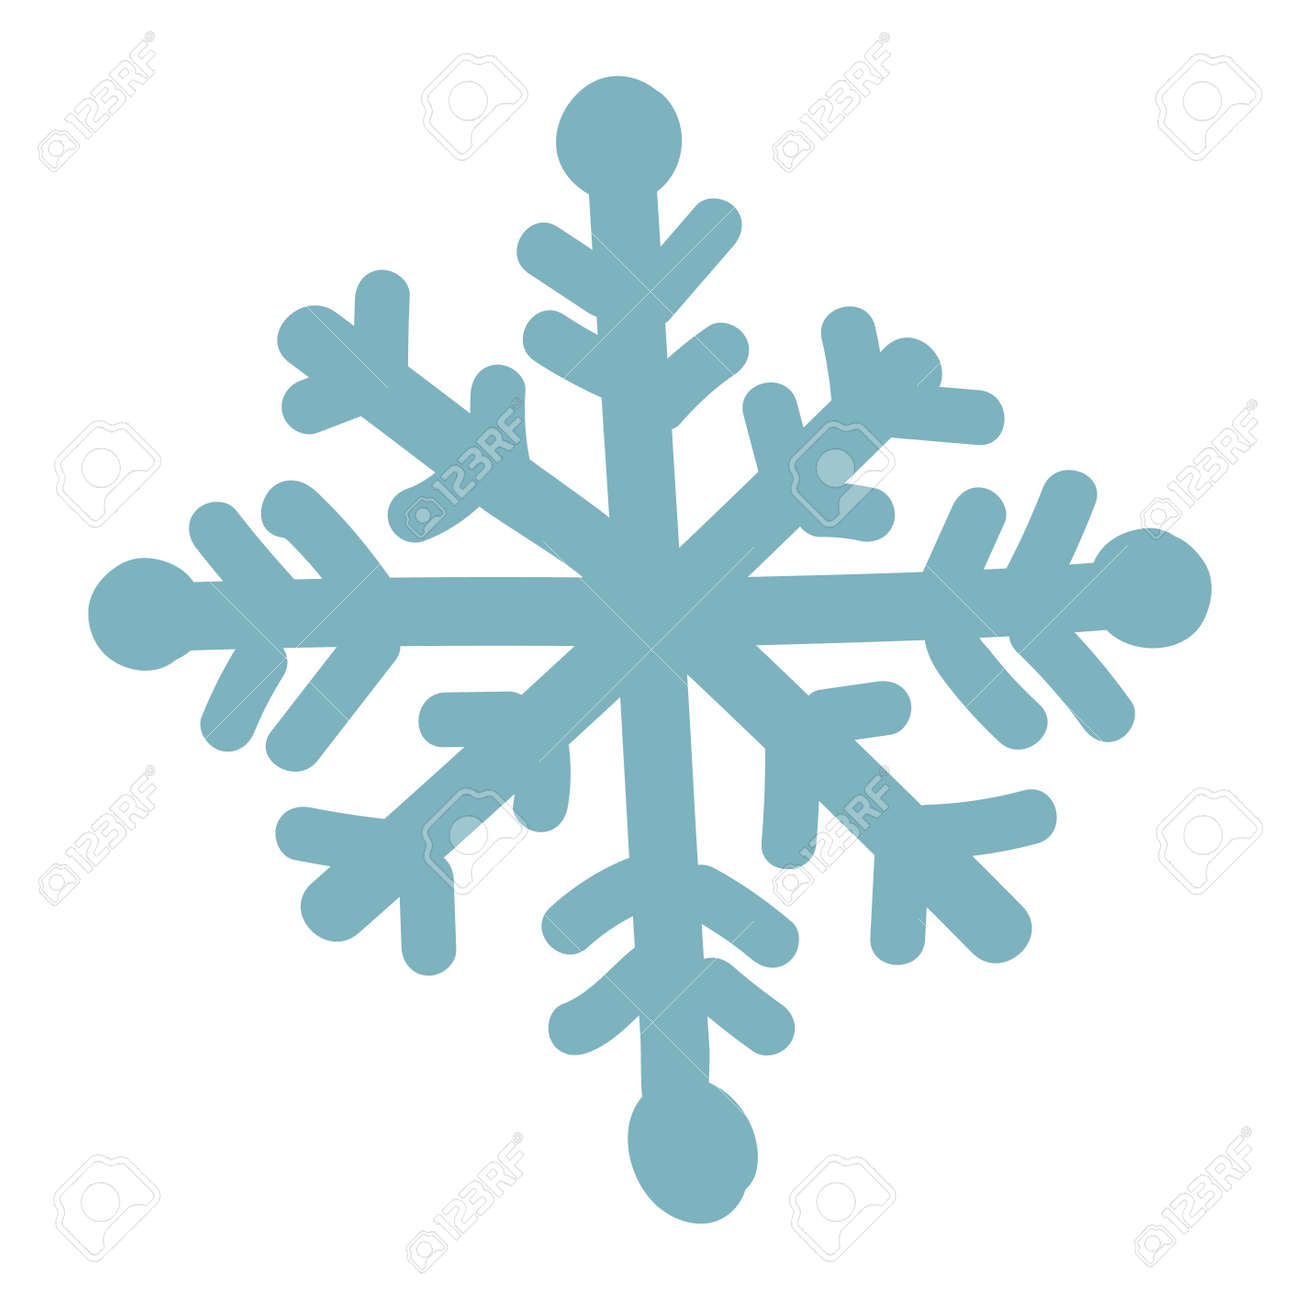 snowflake vector illustration and season nature winter snowflake rh 123rf com snowflake vector free eps snowflake free vector art